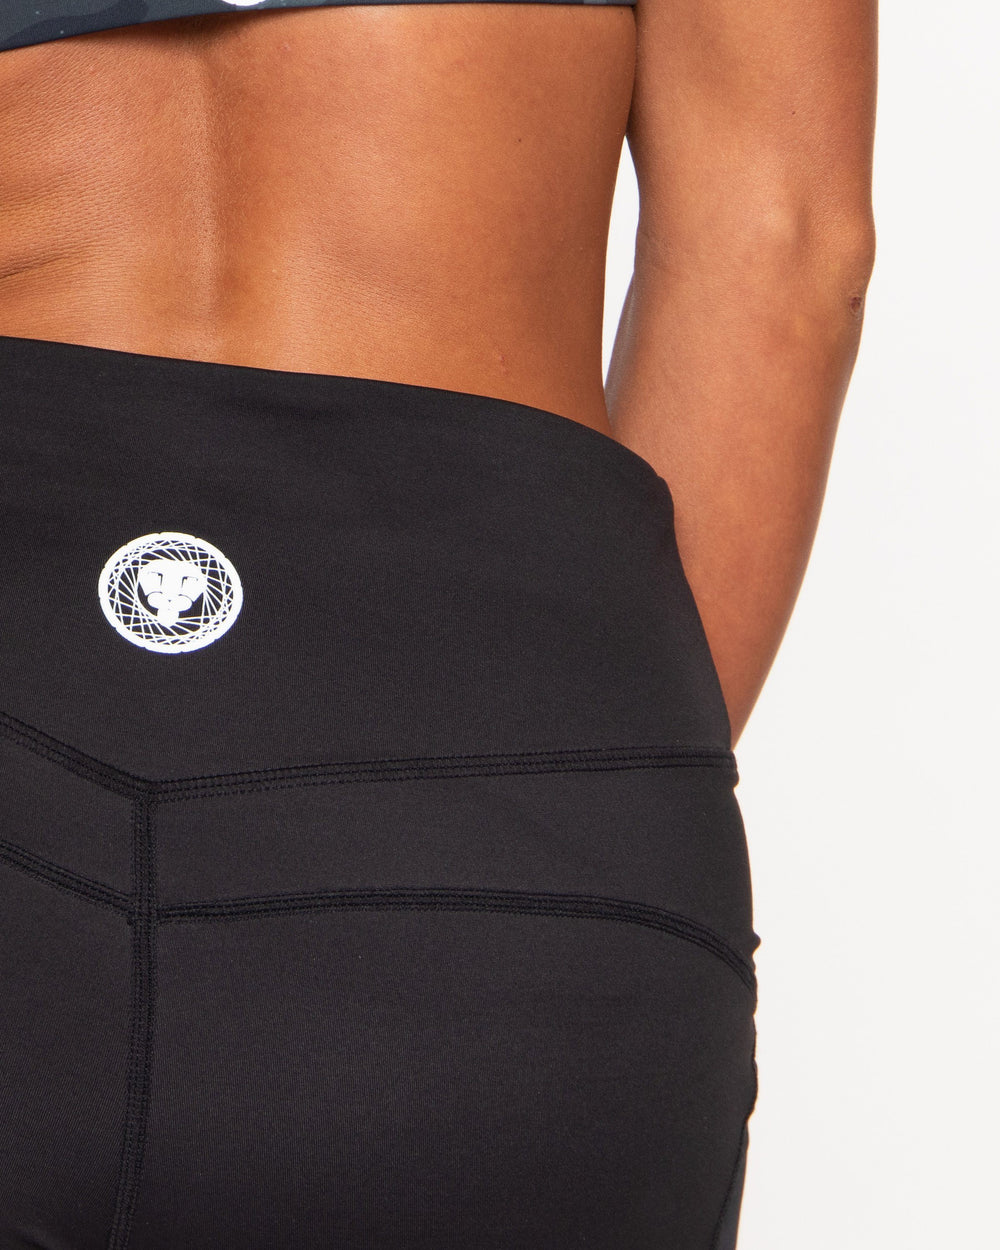 Activa Spandex Shorts - Black WOMEN'S SHORTS STAIX